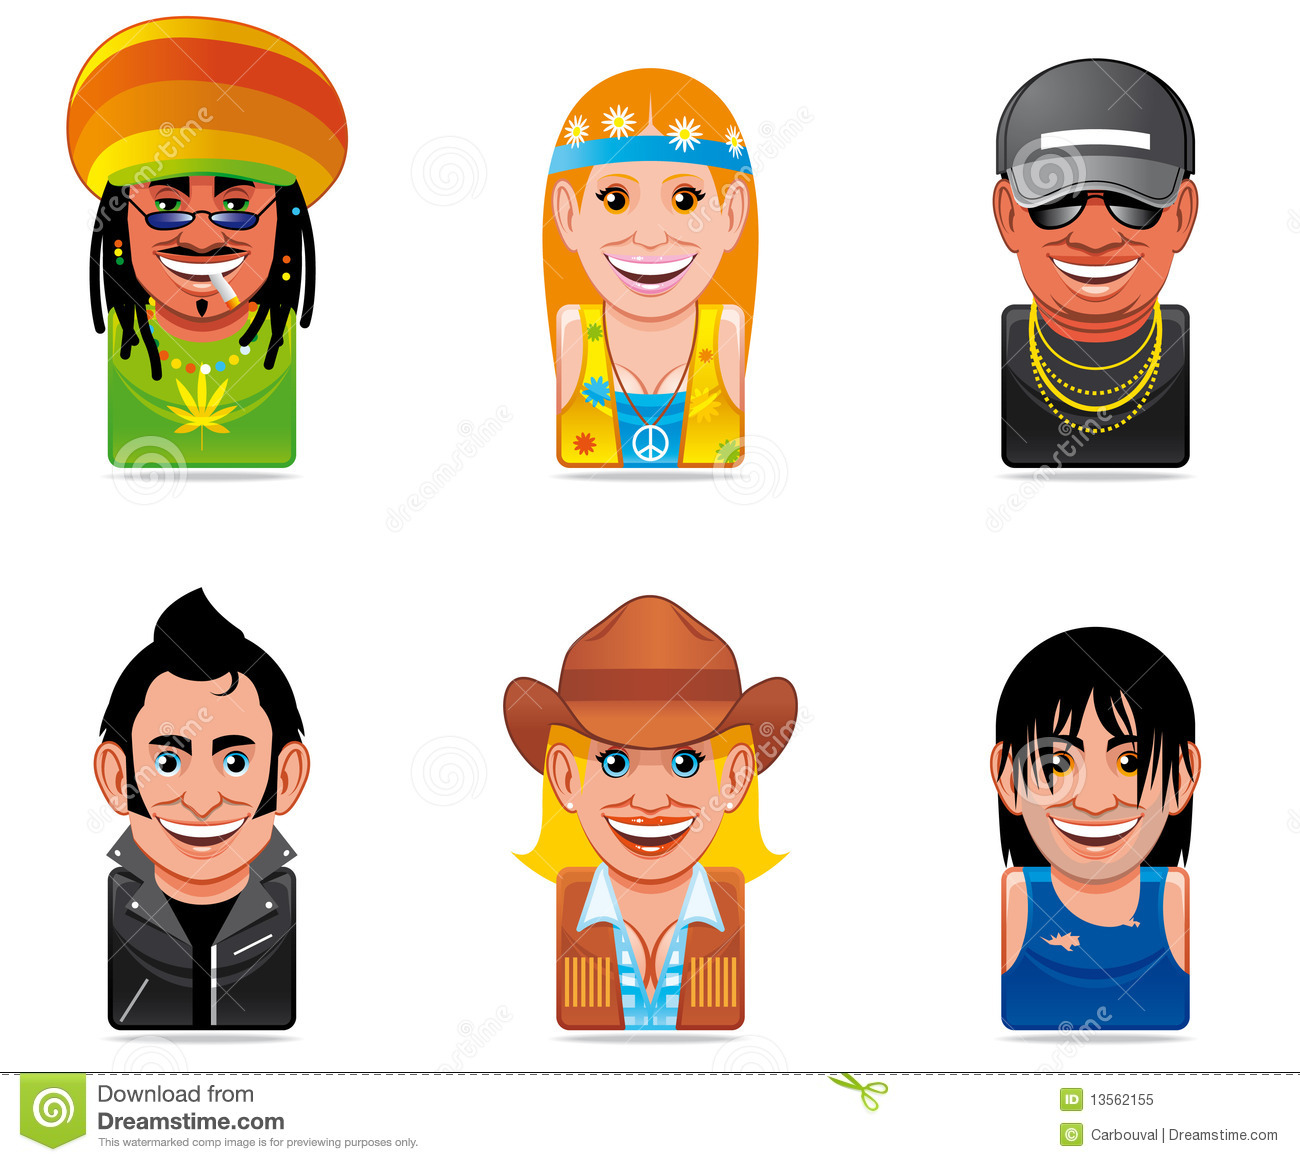 14 Cartoon Person Icon Images